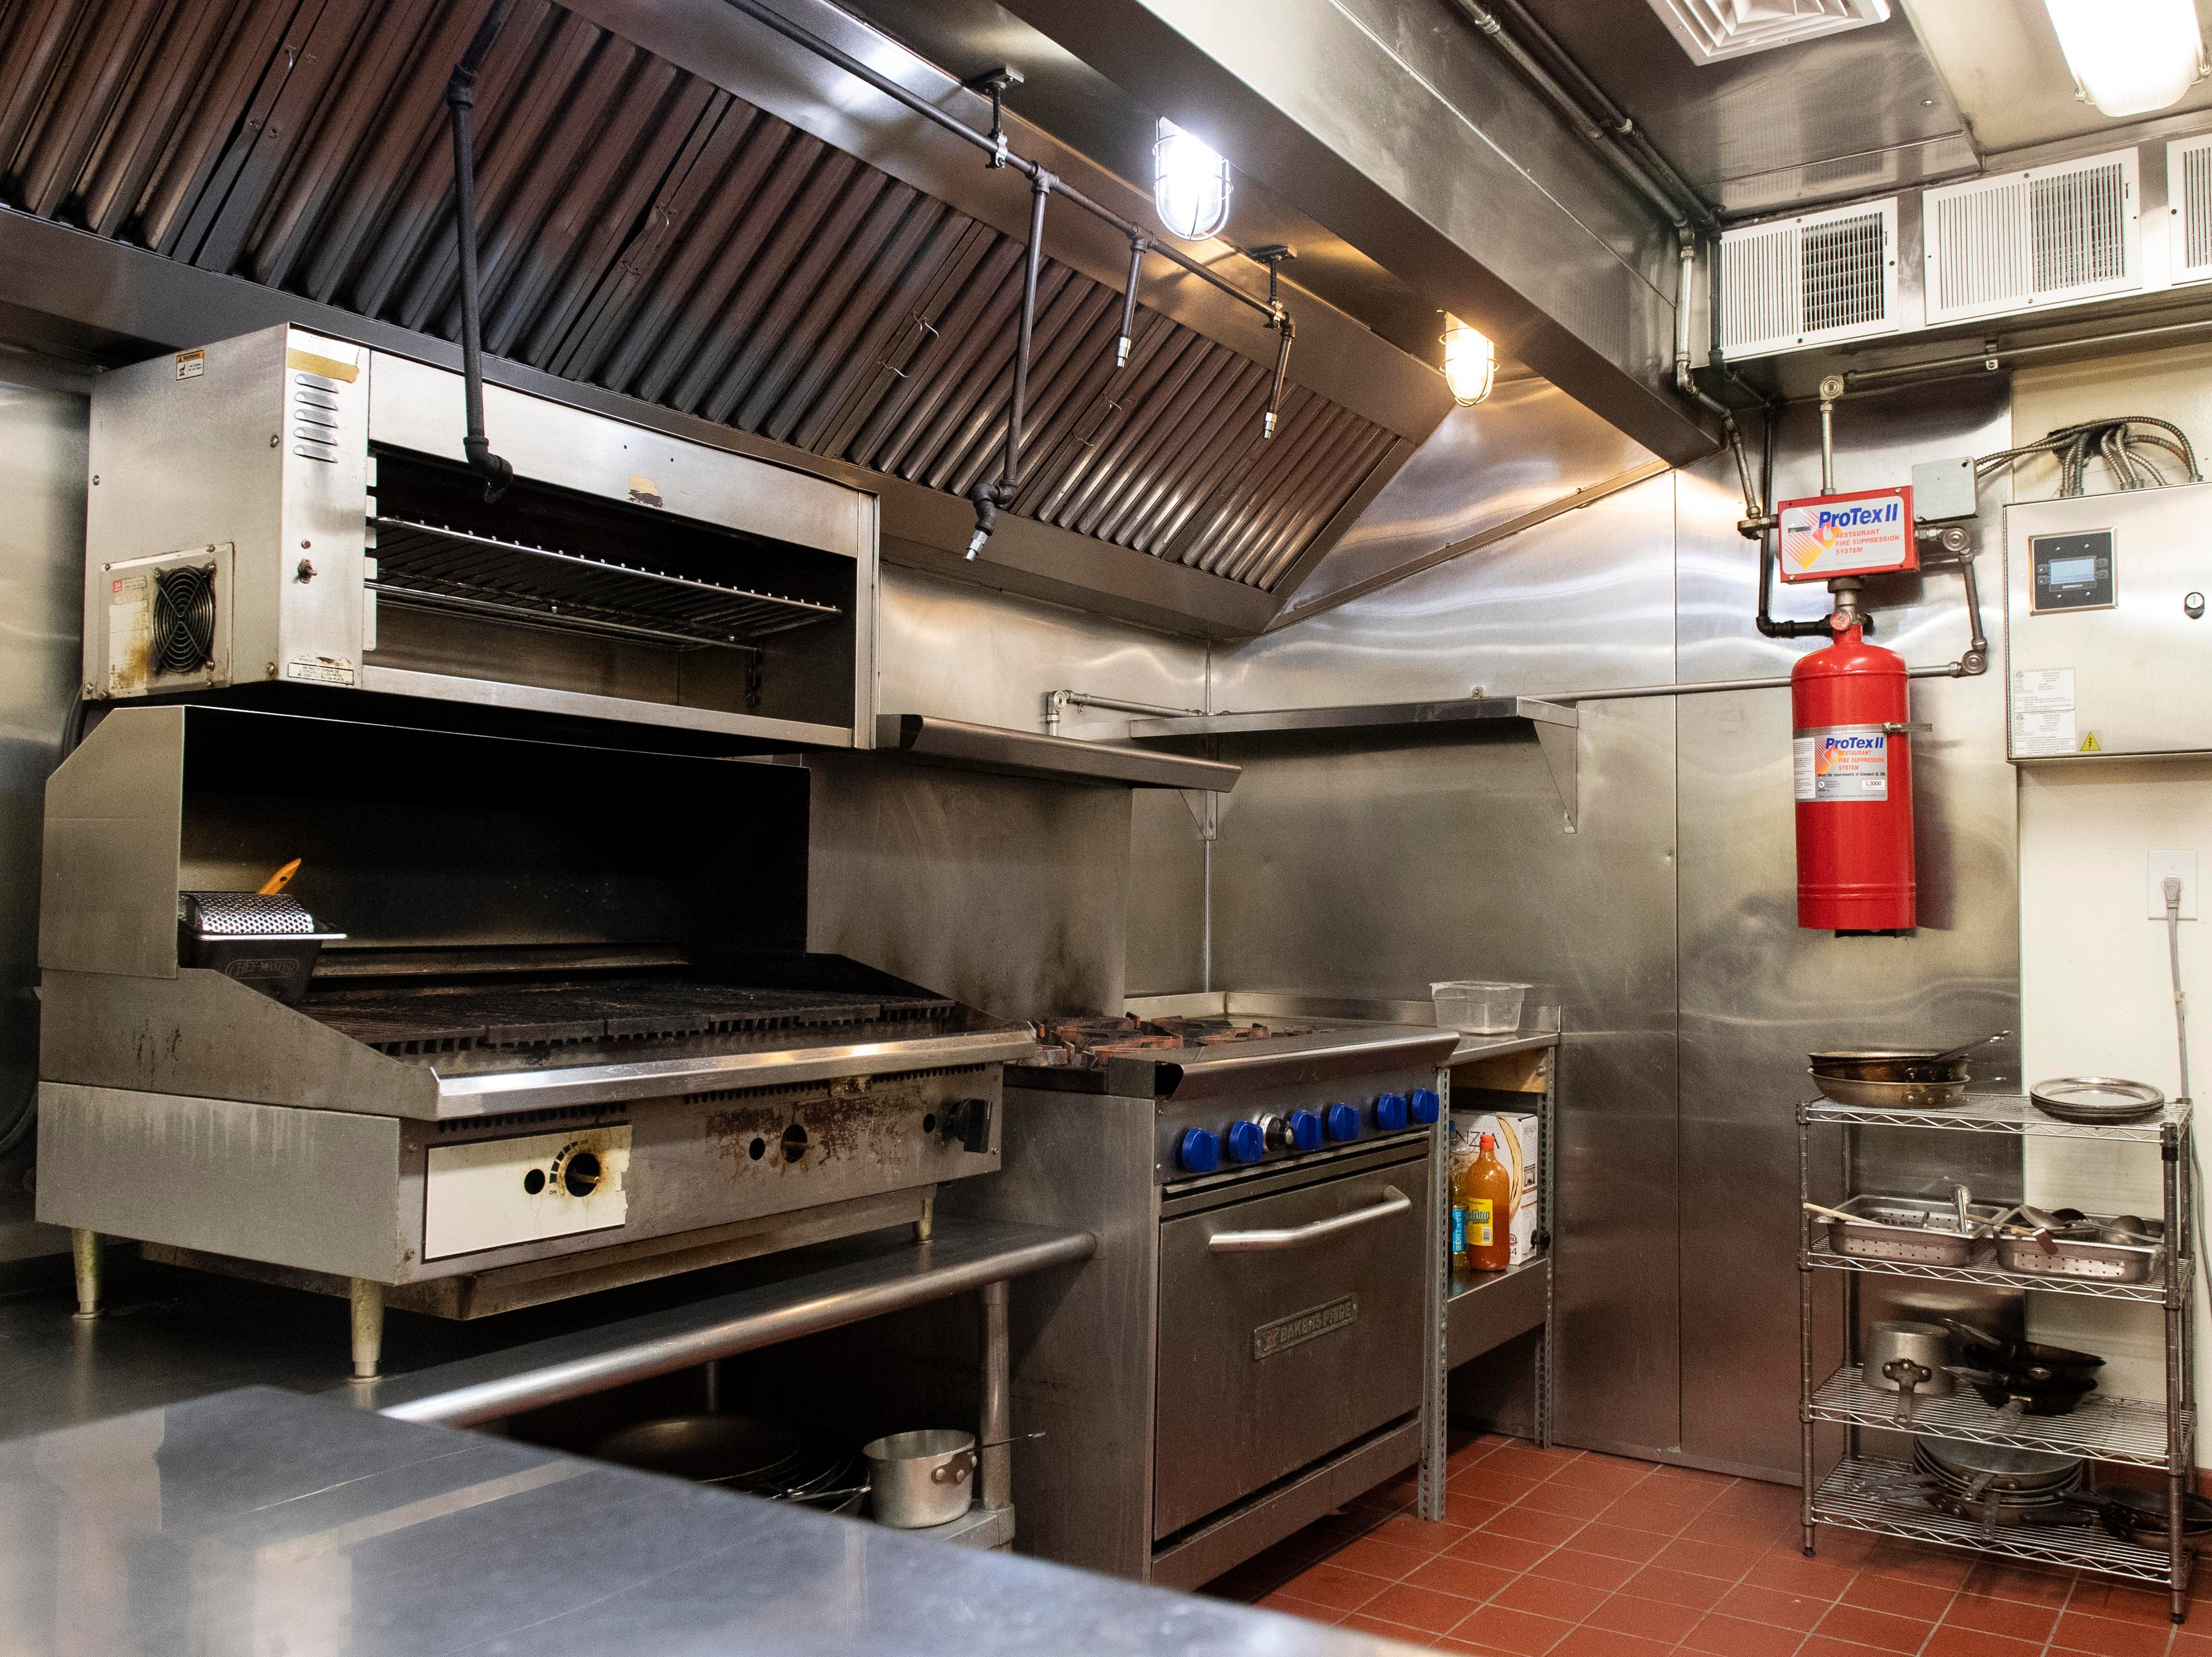 After getting his start in the restaurant business years ago as a dishwasher, Micheal McMonigle worked his way up to being an executive chef. Now, He's the owner and head chef at HomeGrown, which resides in the historic Frey Mansion. Seen here is his kitchen, Thursday, Jan. 3, 2019. The restaurant is set to open on Jan. 10, with an American-style menu with a French twist. It's also BYOB.